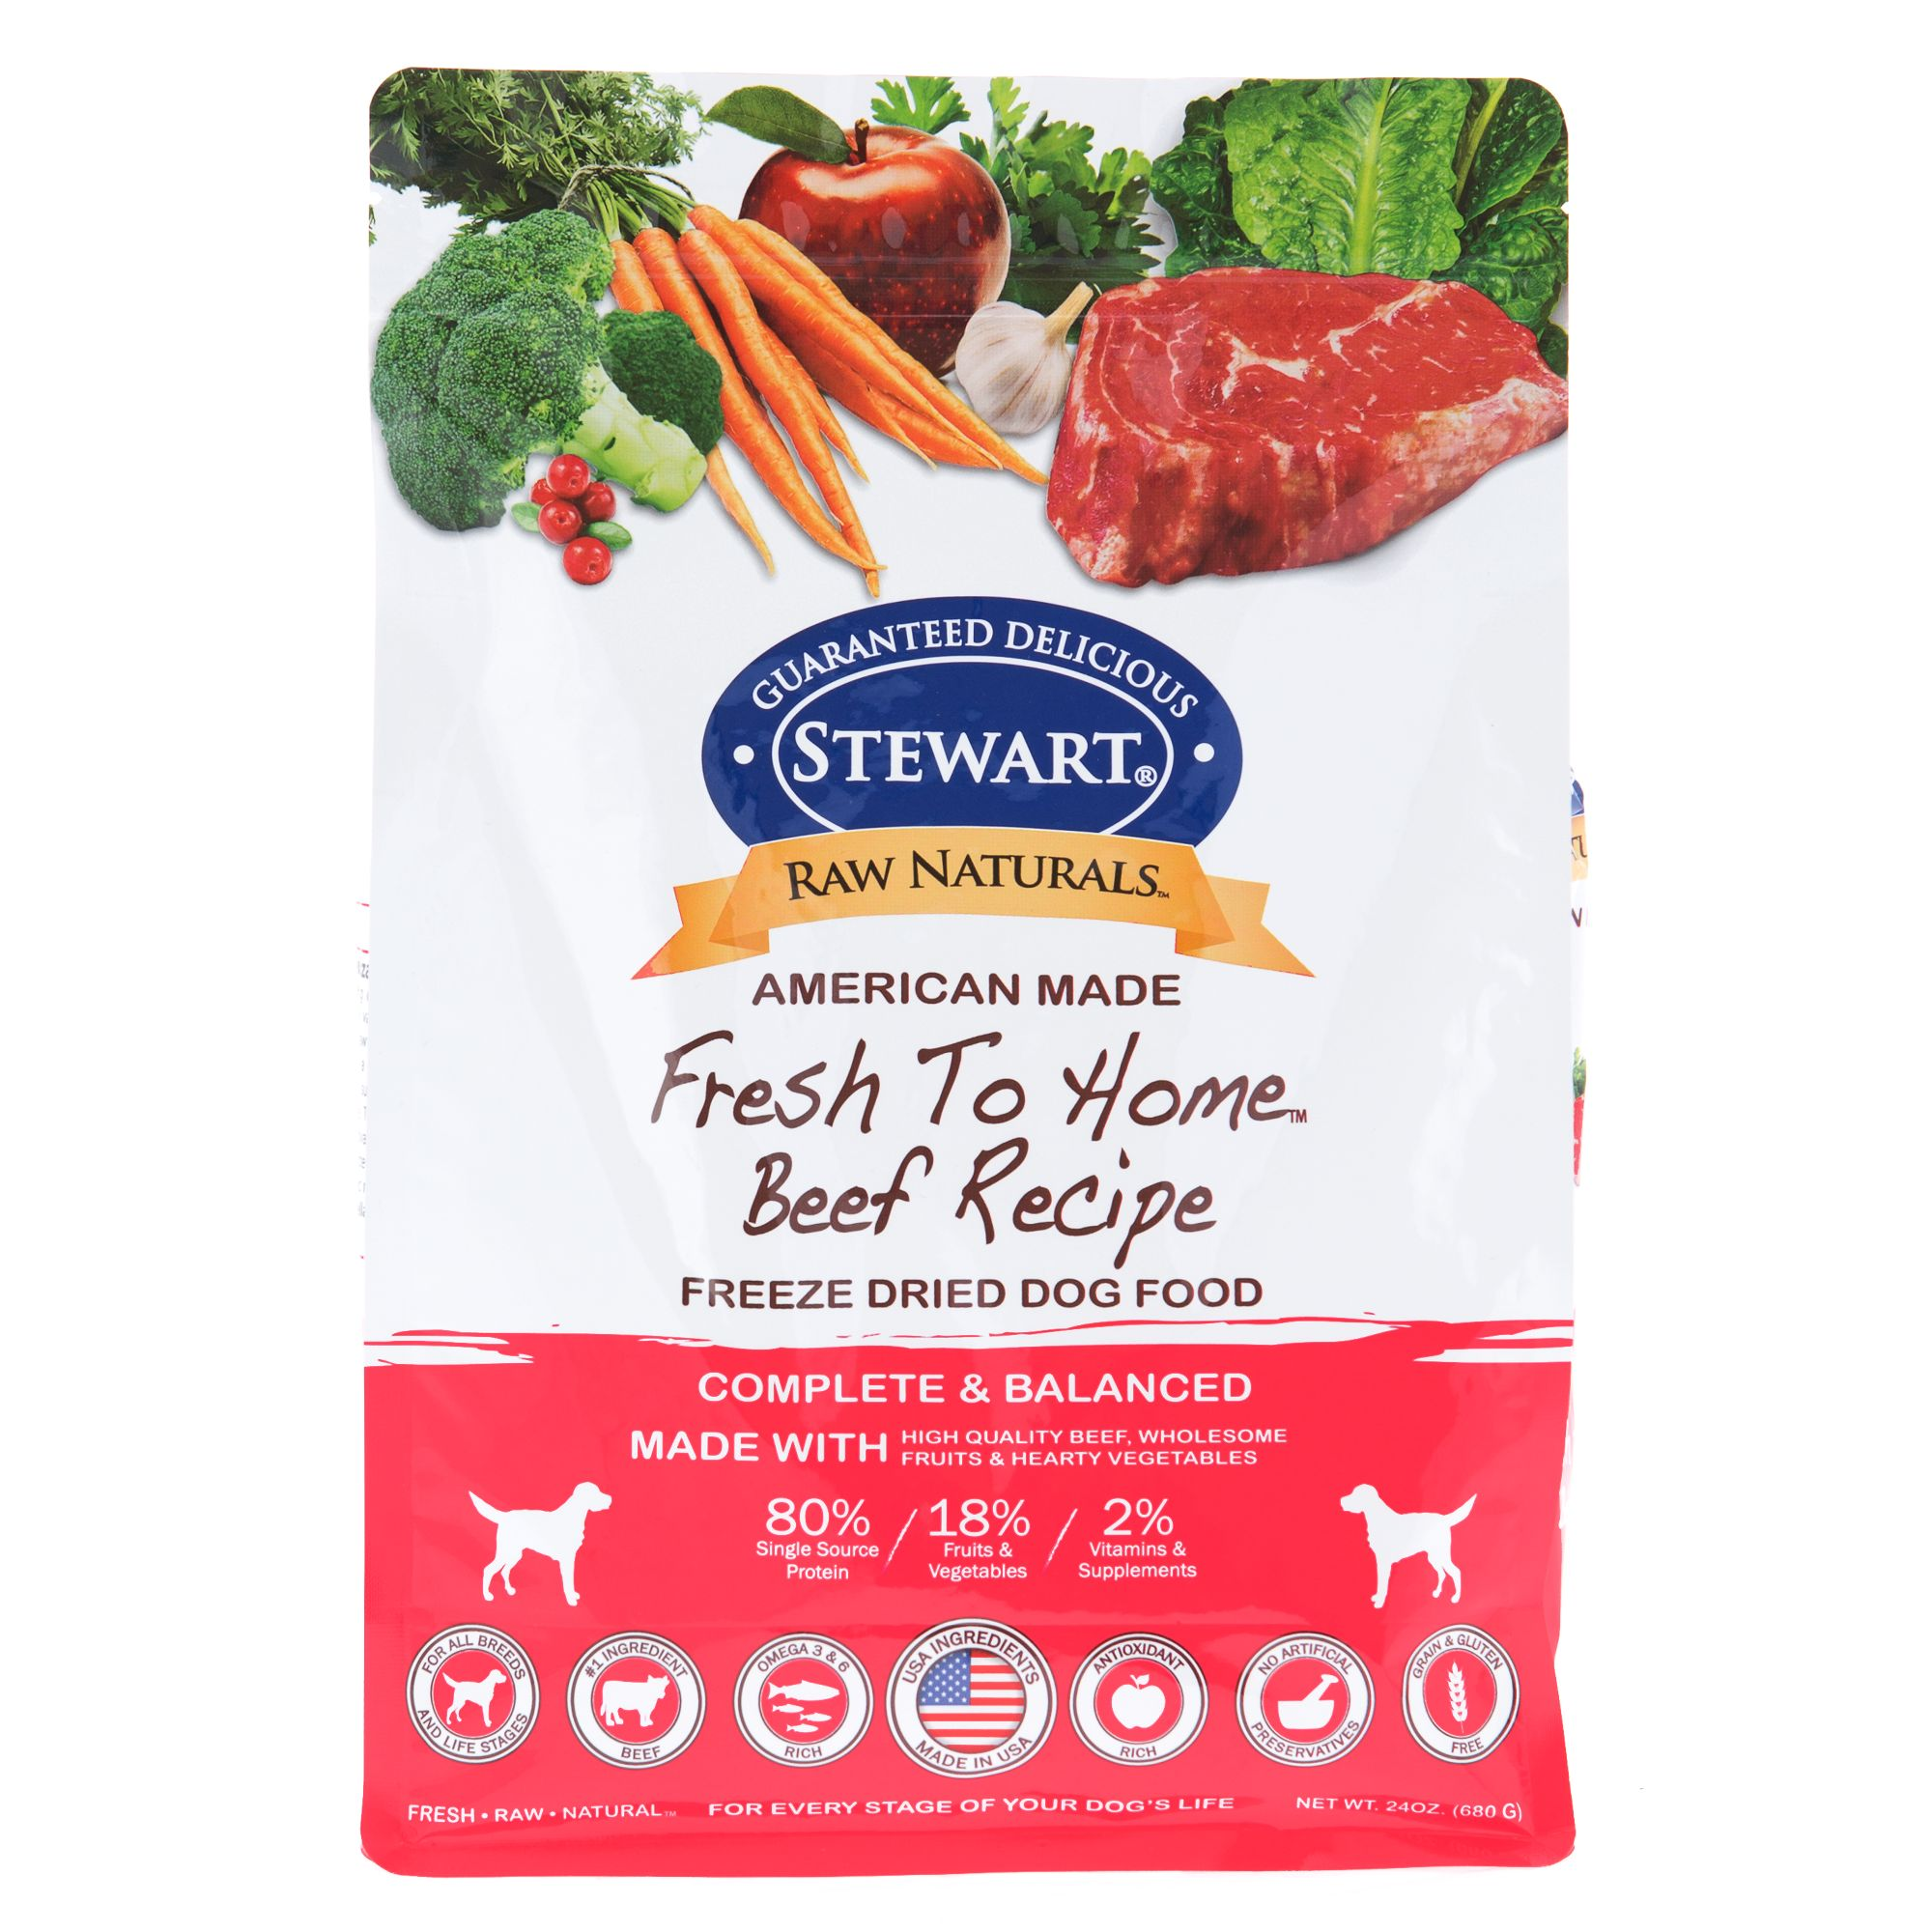 Stewart Raw Naturals Dog Food Freeze Dried Beef Size 24 Oz